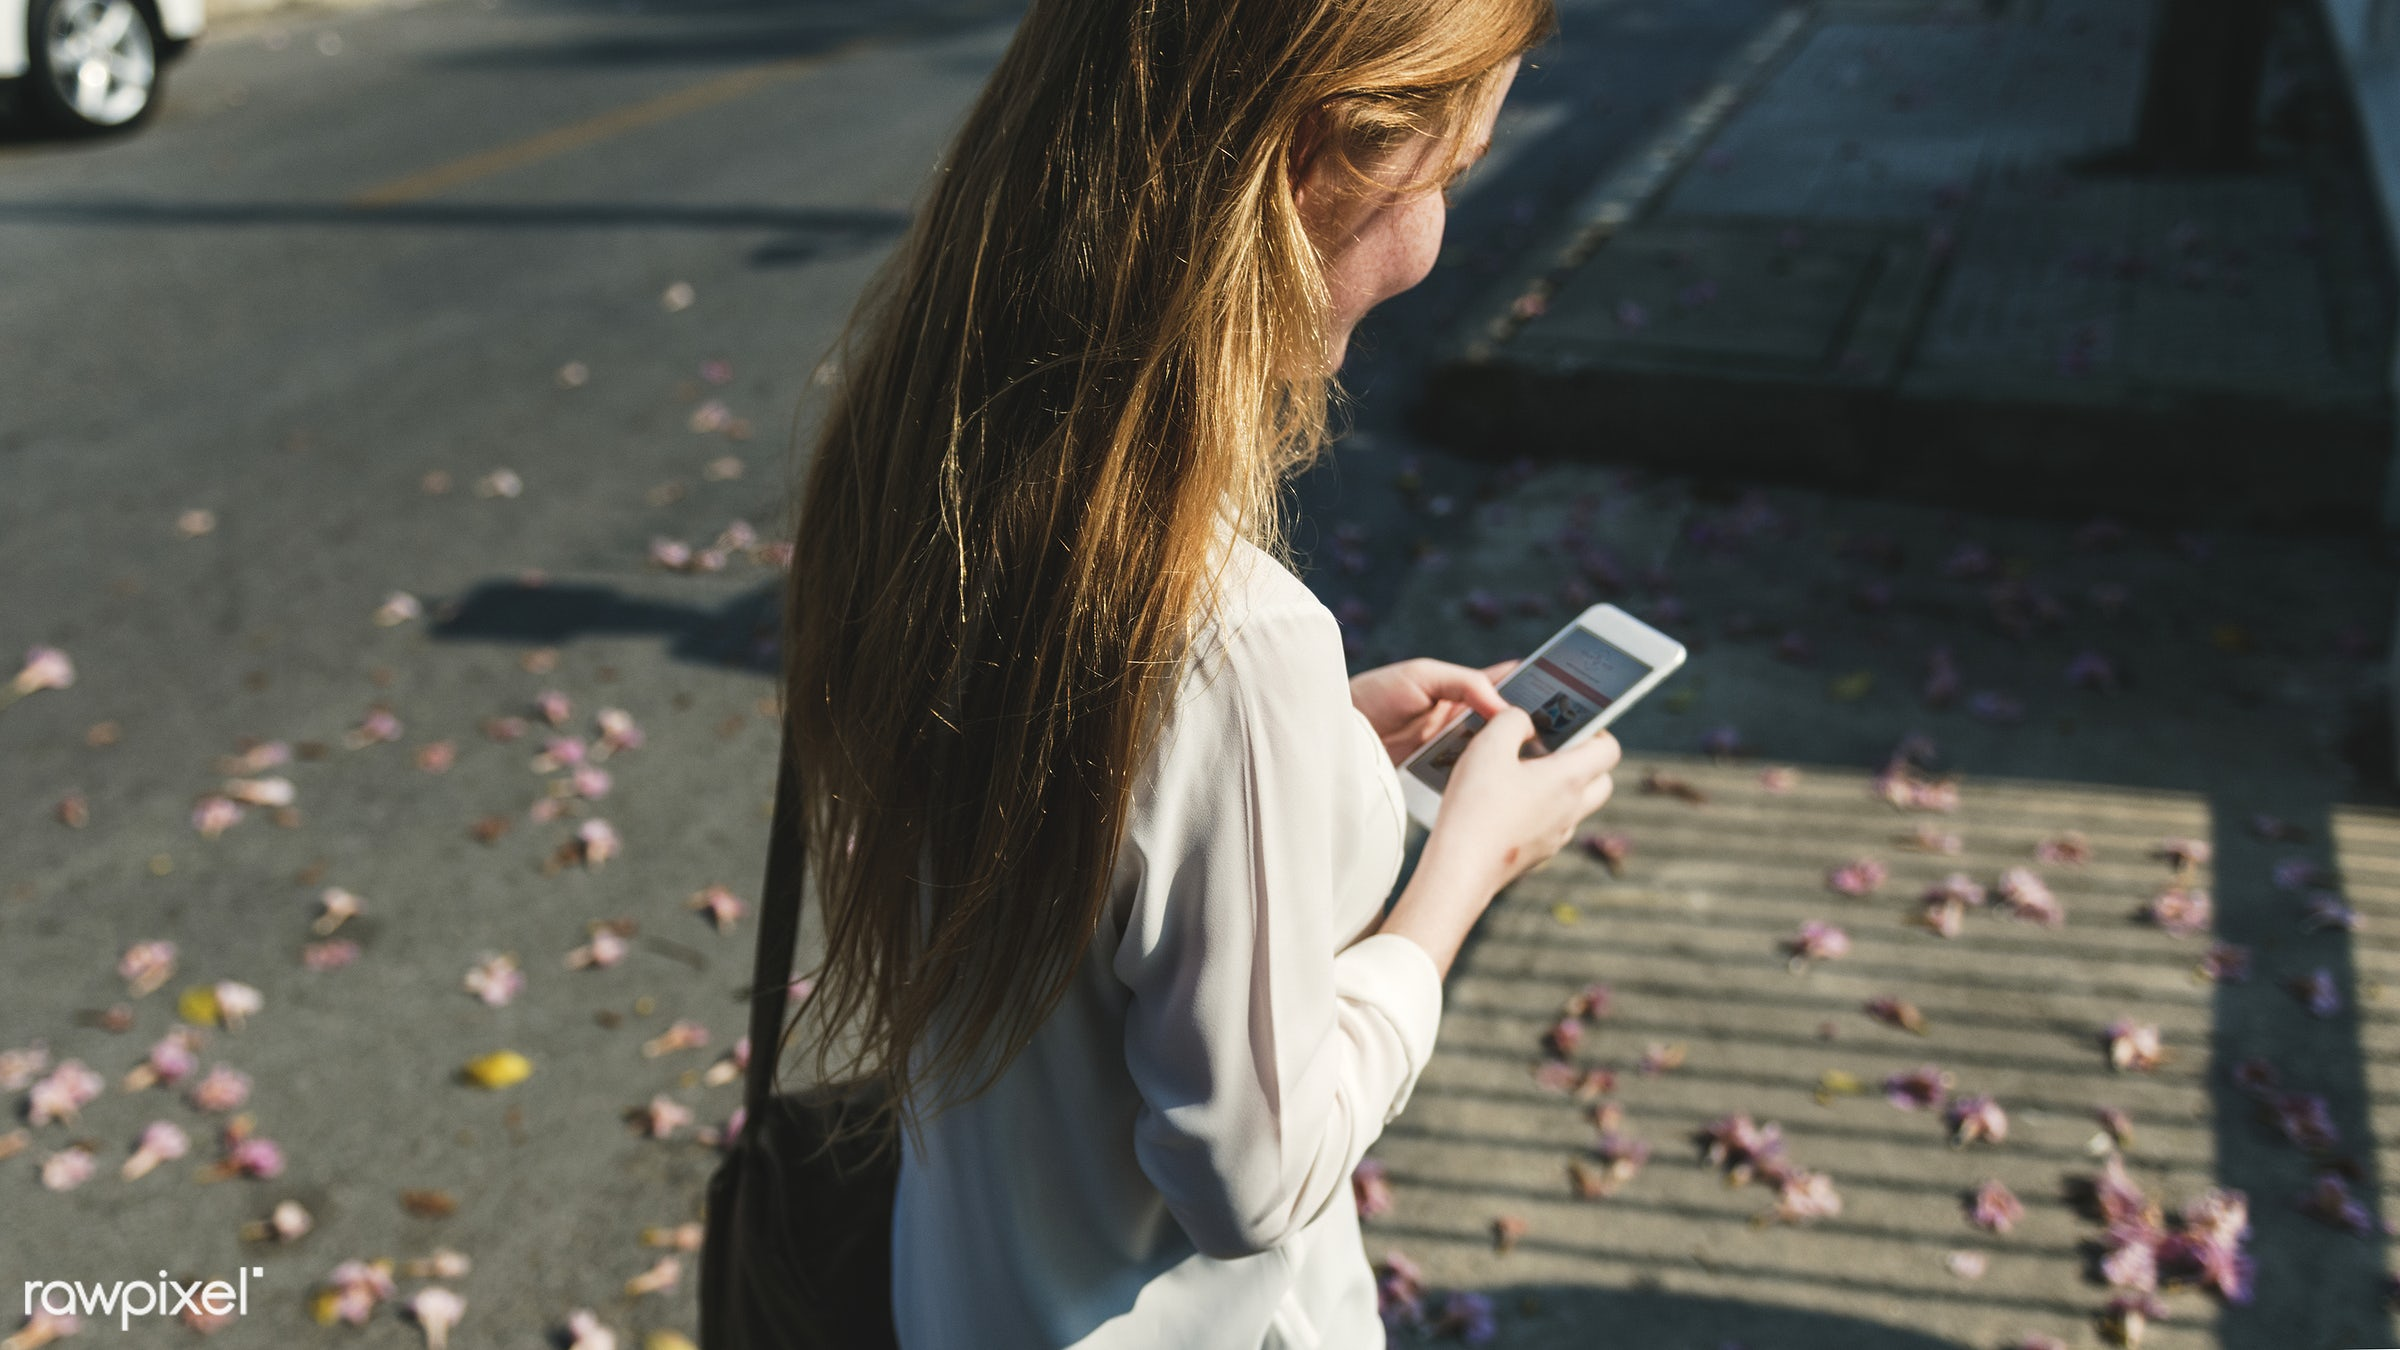 Girl Browsing Phone Connection Concept - alone, caucasian, cellphone, cheerful, communication, connection, device, digital,...